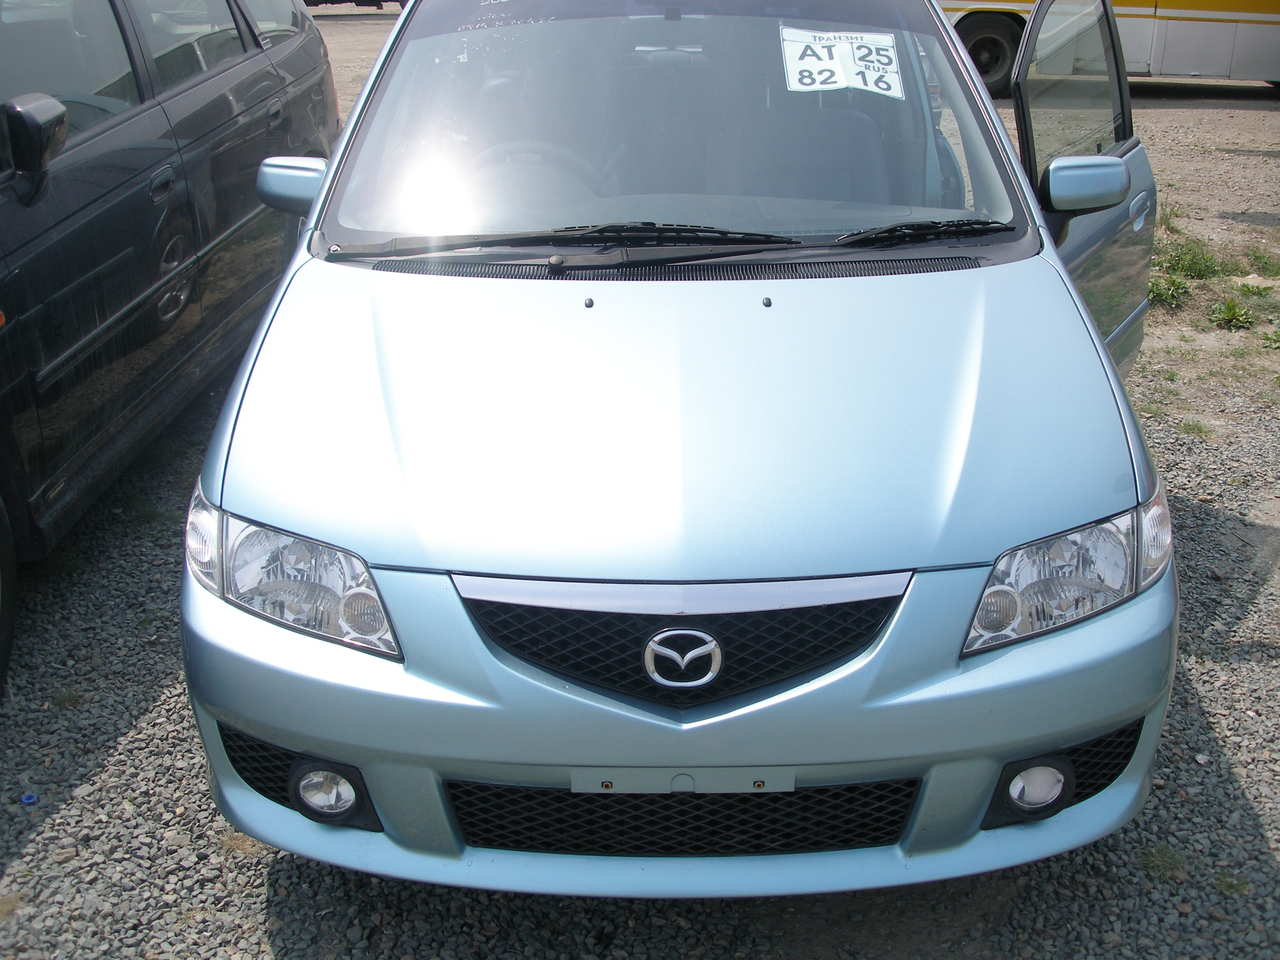 used 2003 mazda premacy images 2000cc gasoline ff automatic for sale. Black Bedroom Furniture Sets. Home Design Ideas